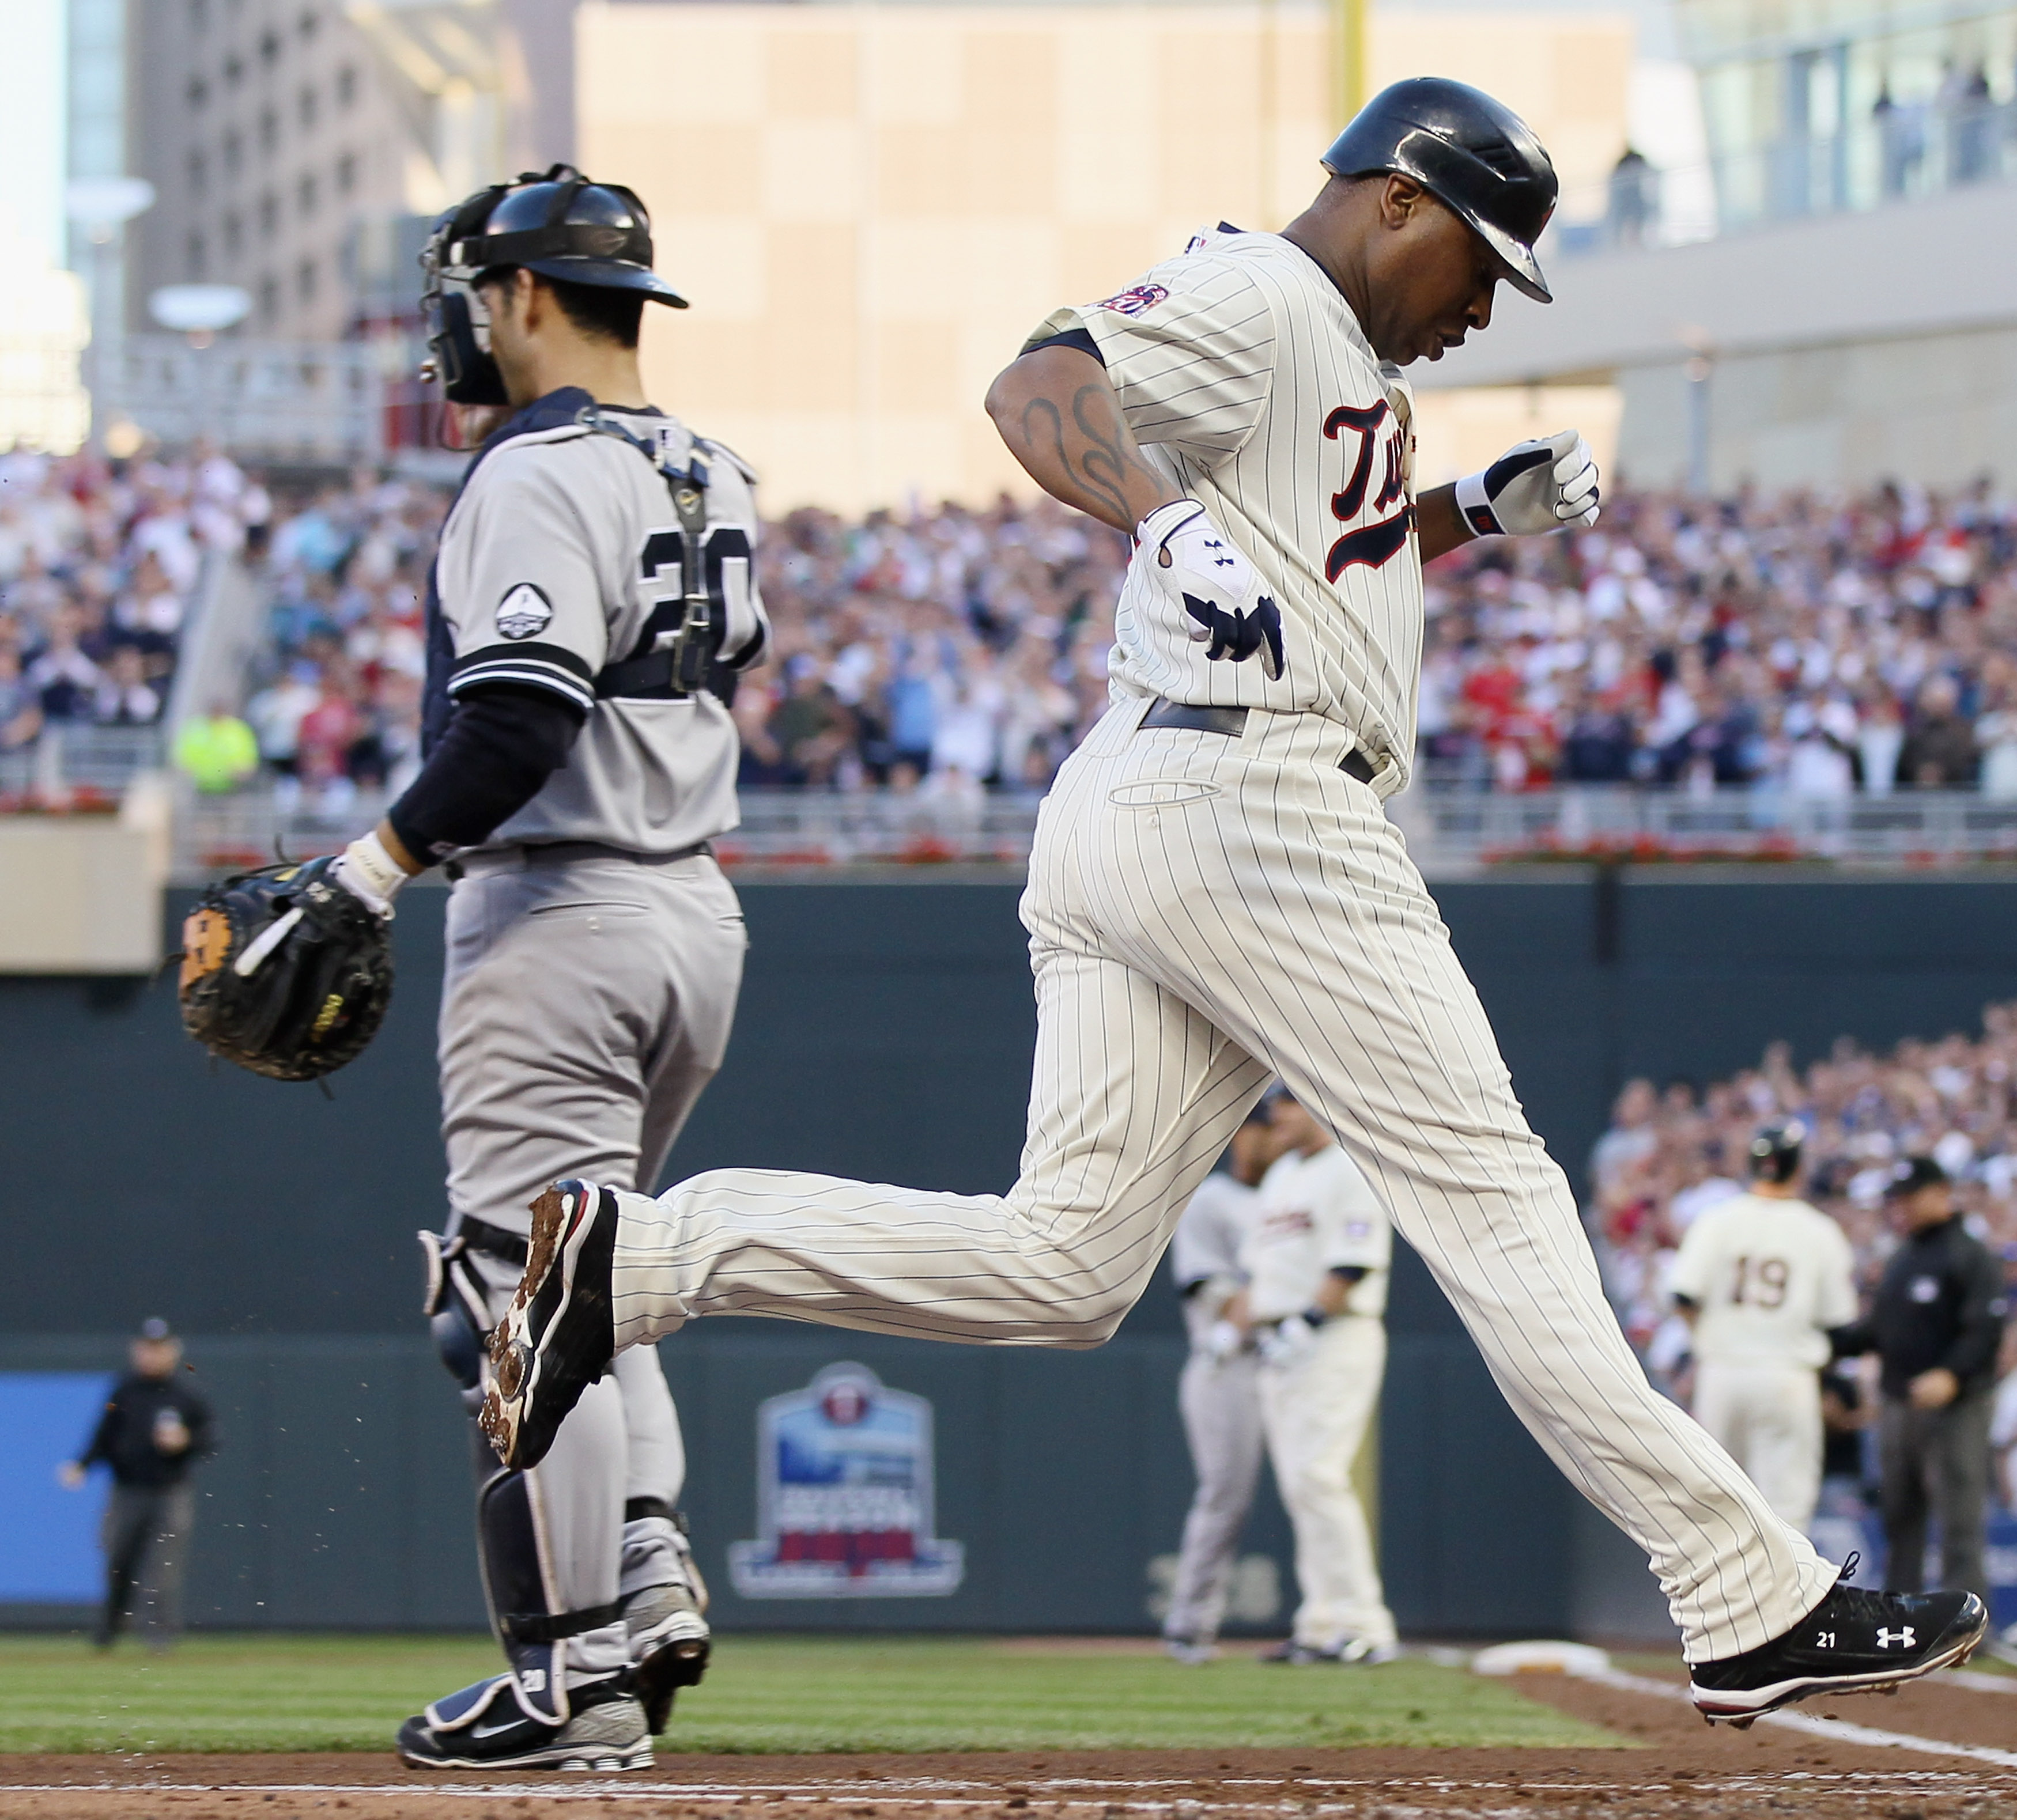 MINNEAPOLIS - OCTOBER 07:  Delmon Young #21 of the Minnesota Twins scores a run past Jorge Posada #20 of the New York Yankees during game two of the ALDS on October 7, 2010 at Target Field in Minneapolis, Minnesota.  (Photo by Elsa/Getty Images)